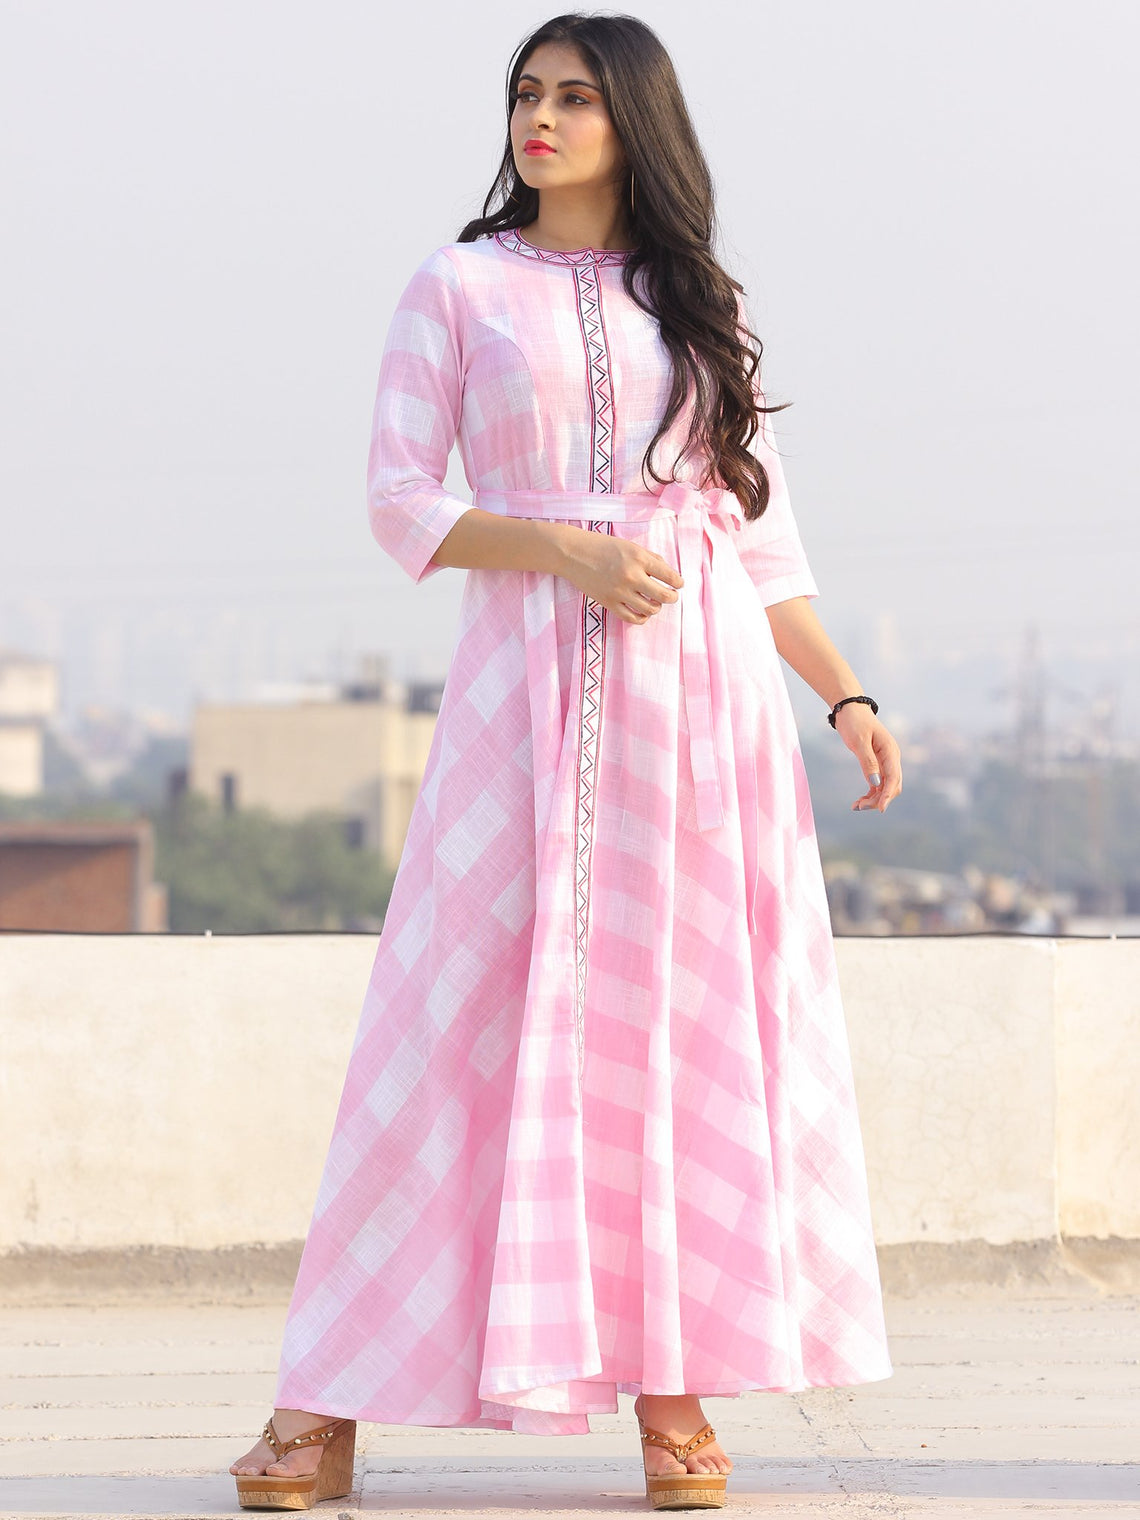 Gulzar Gulabi - Dress - Round Collar Embroidered Cotton Long Dress - D458F2288